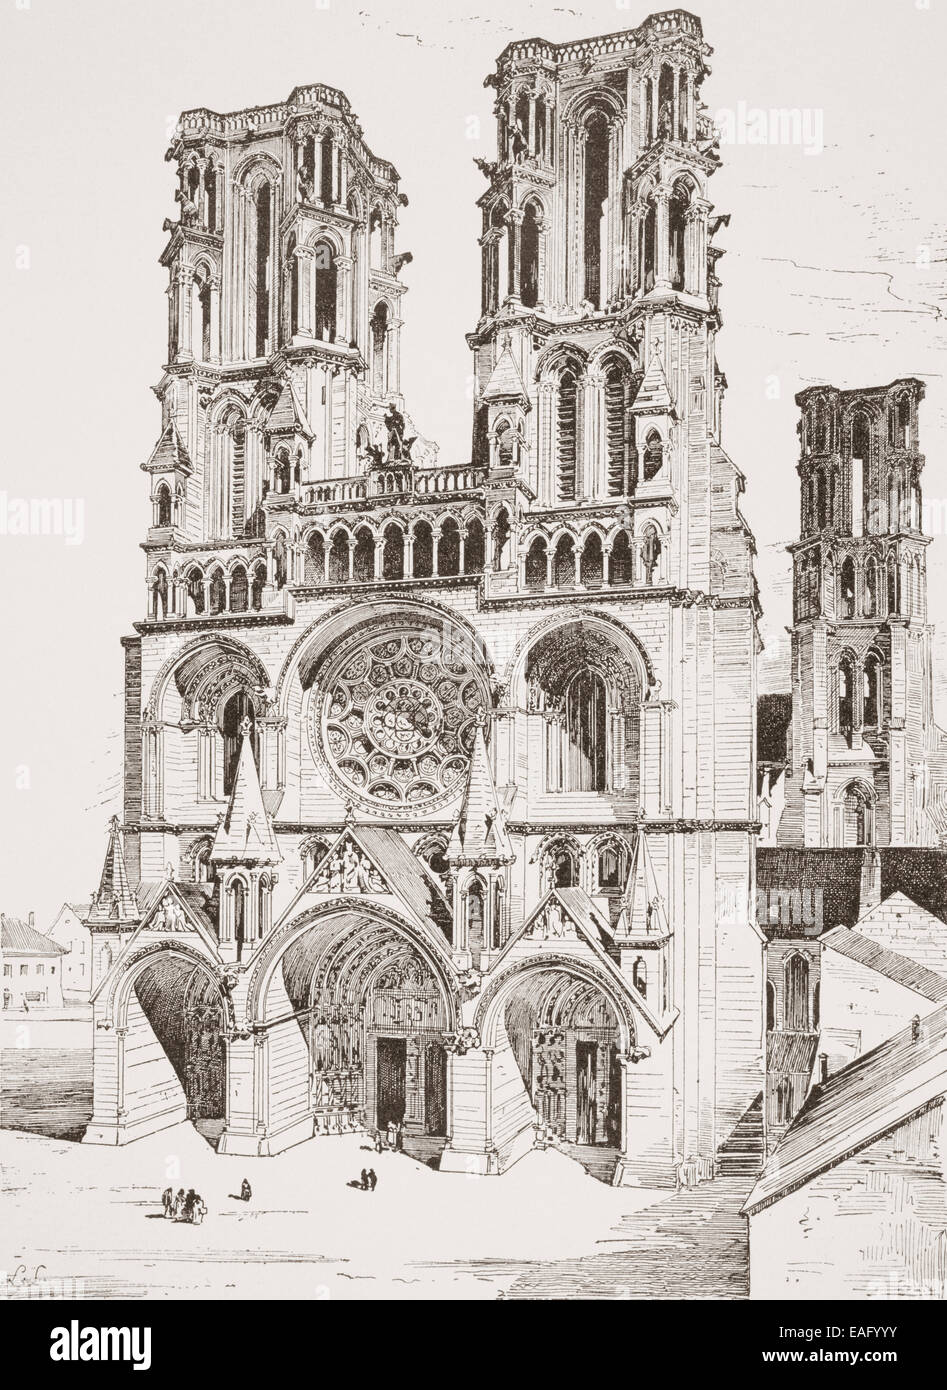 Western facade of Laon Cathedral, Picardy, northern France. Stock Photo